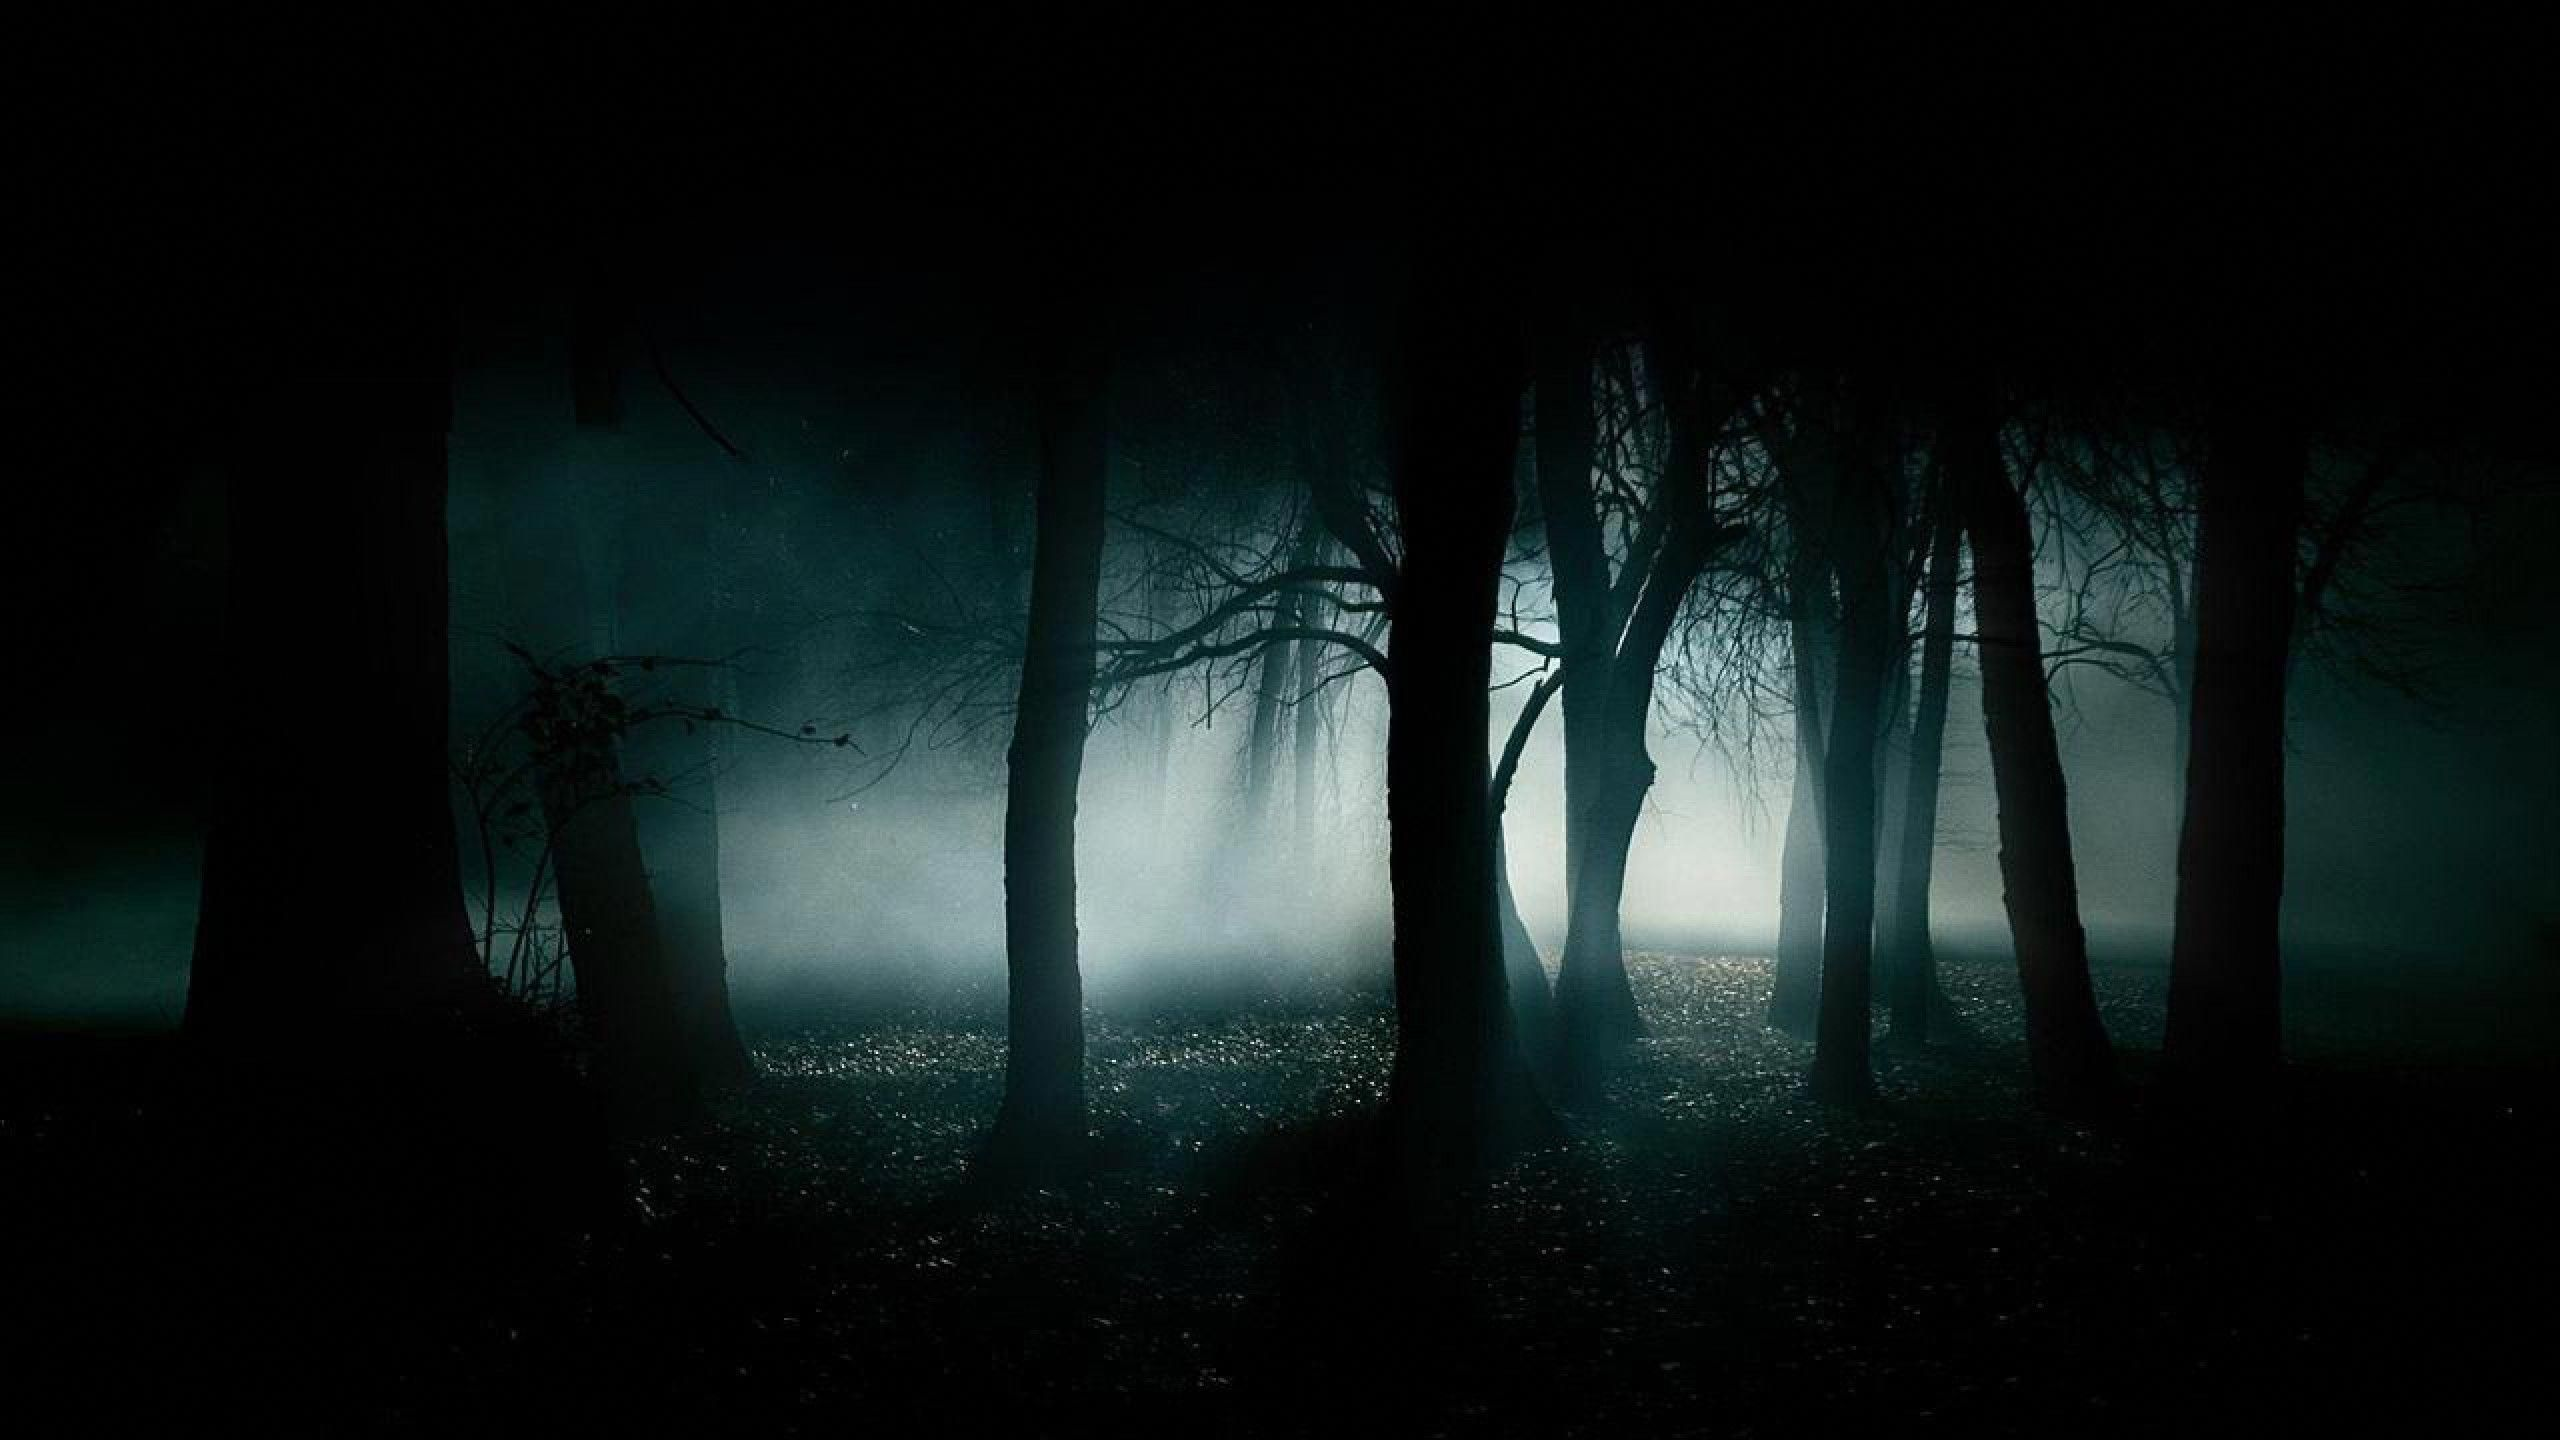 Pin On Camping Hd wallpaper tent camping forest fog